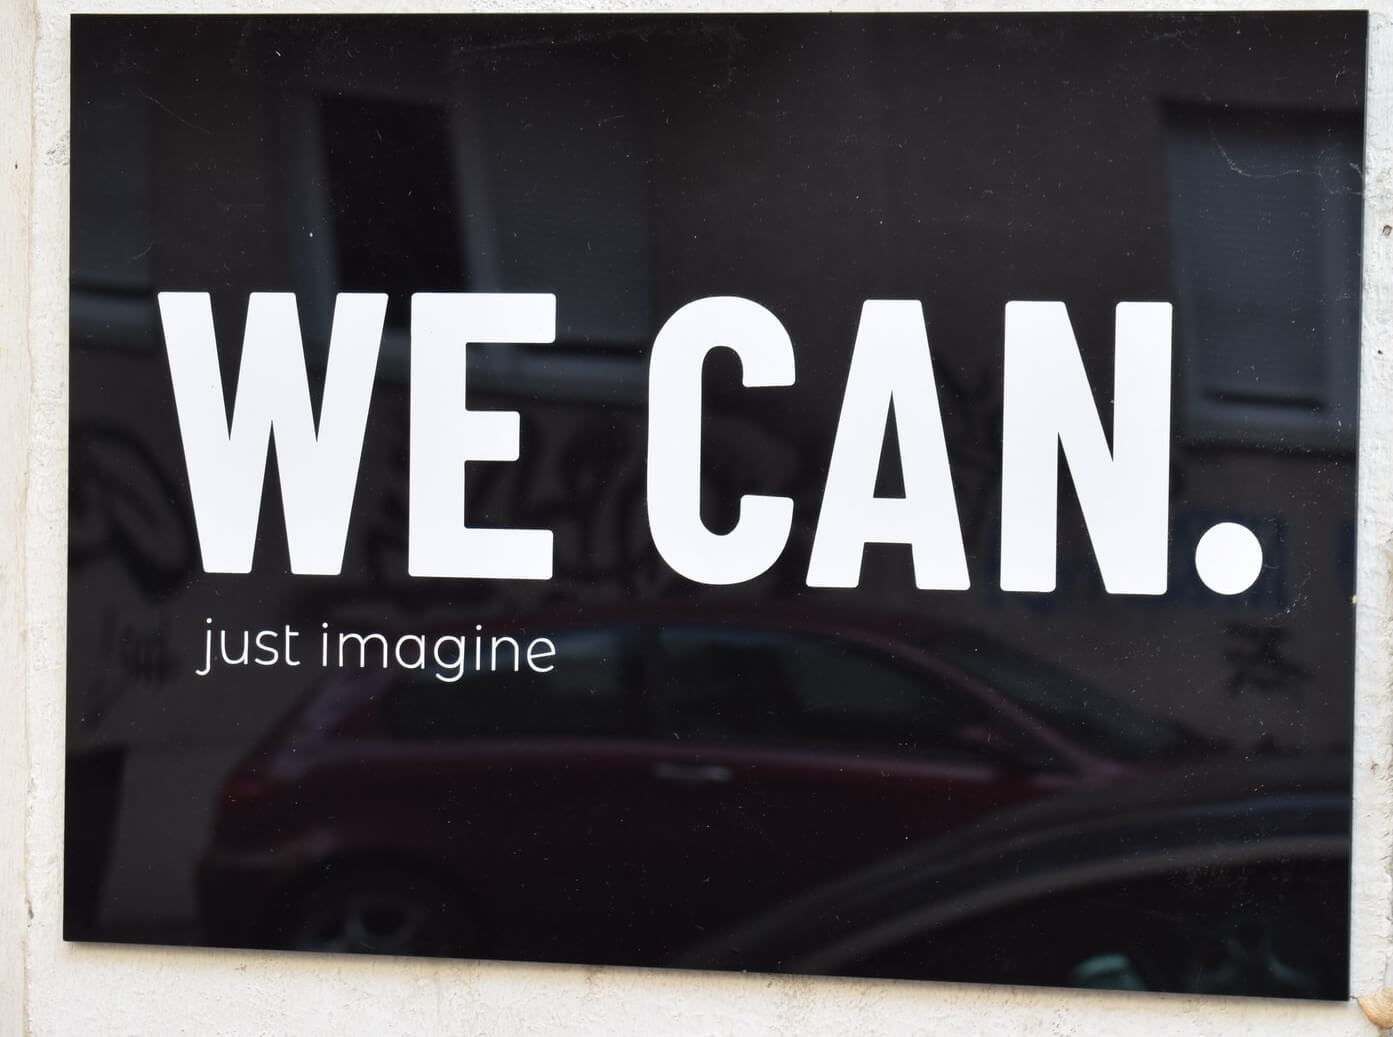 imagination-important-sign-we-can